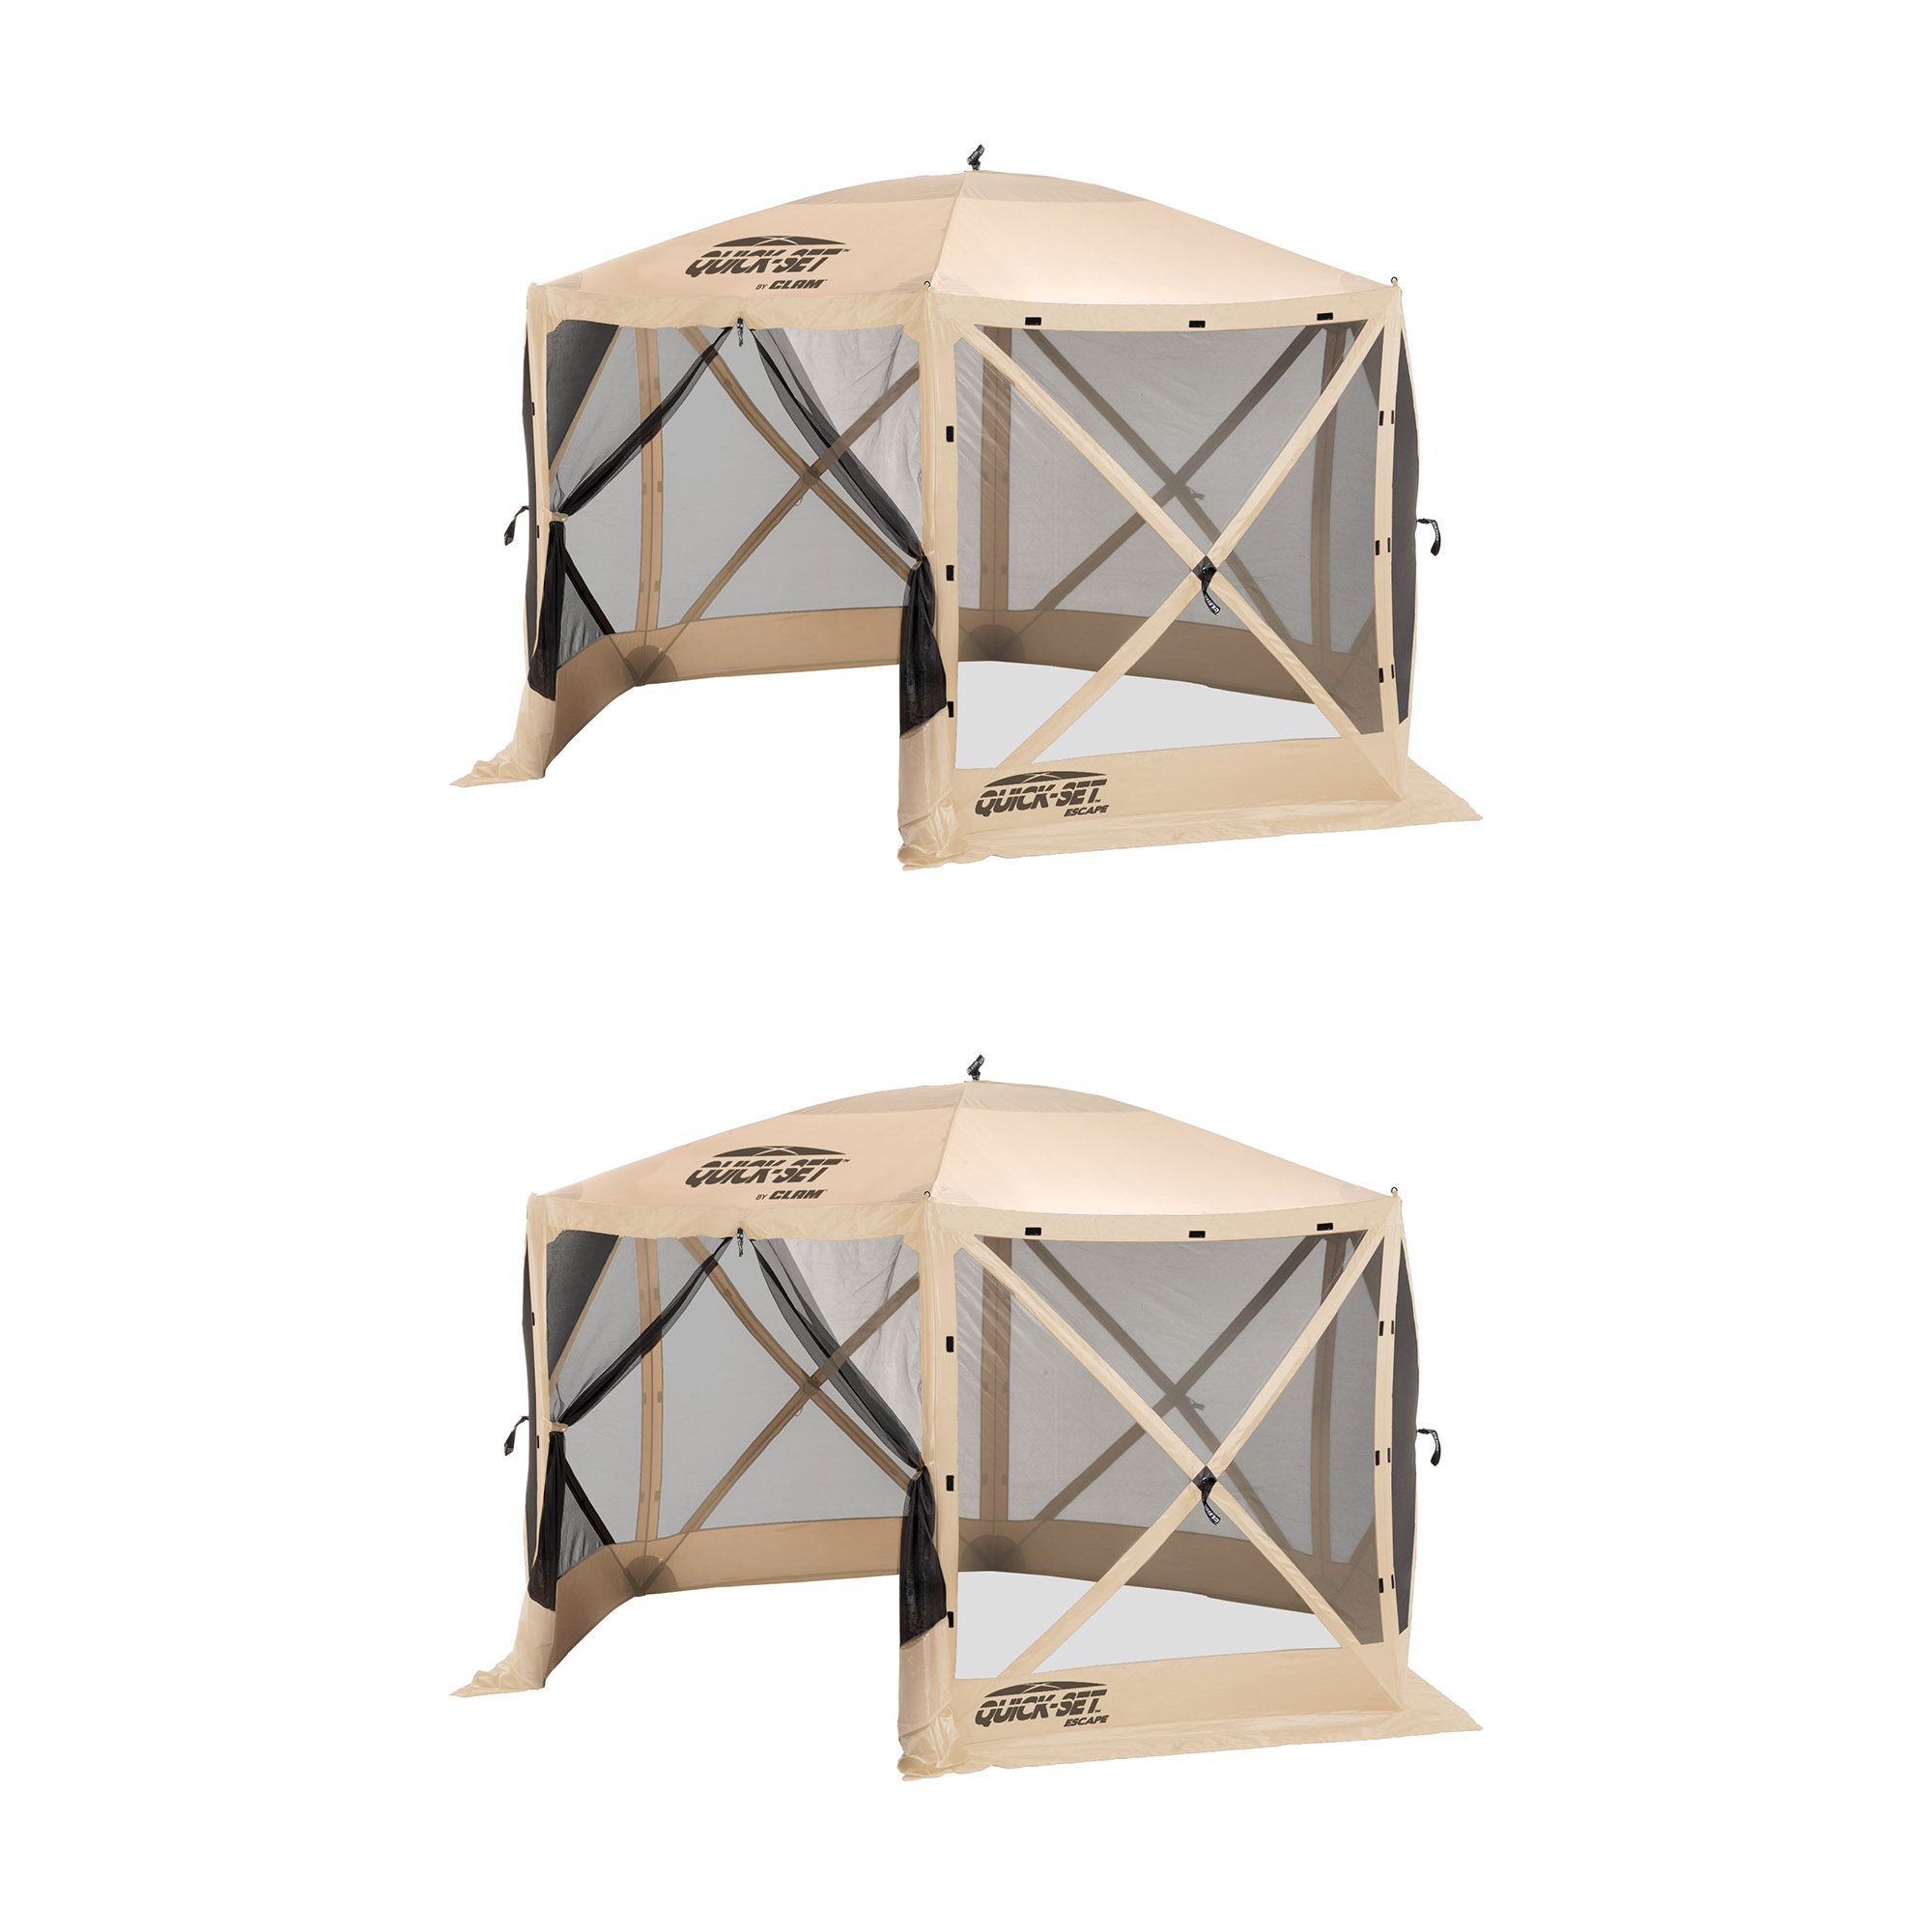 Clam Quick Set Escape Portable Camping Gazebo Canopy Shelter Screen (2 Pack)